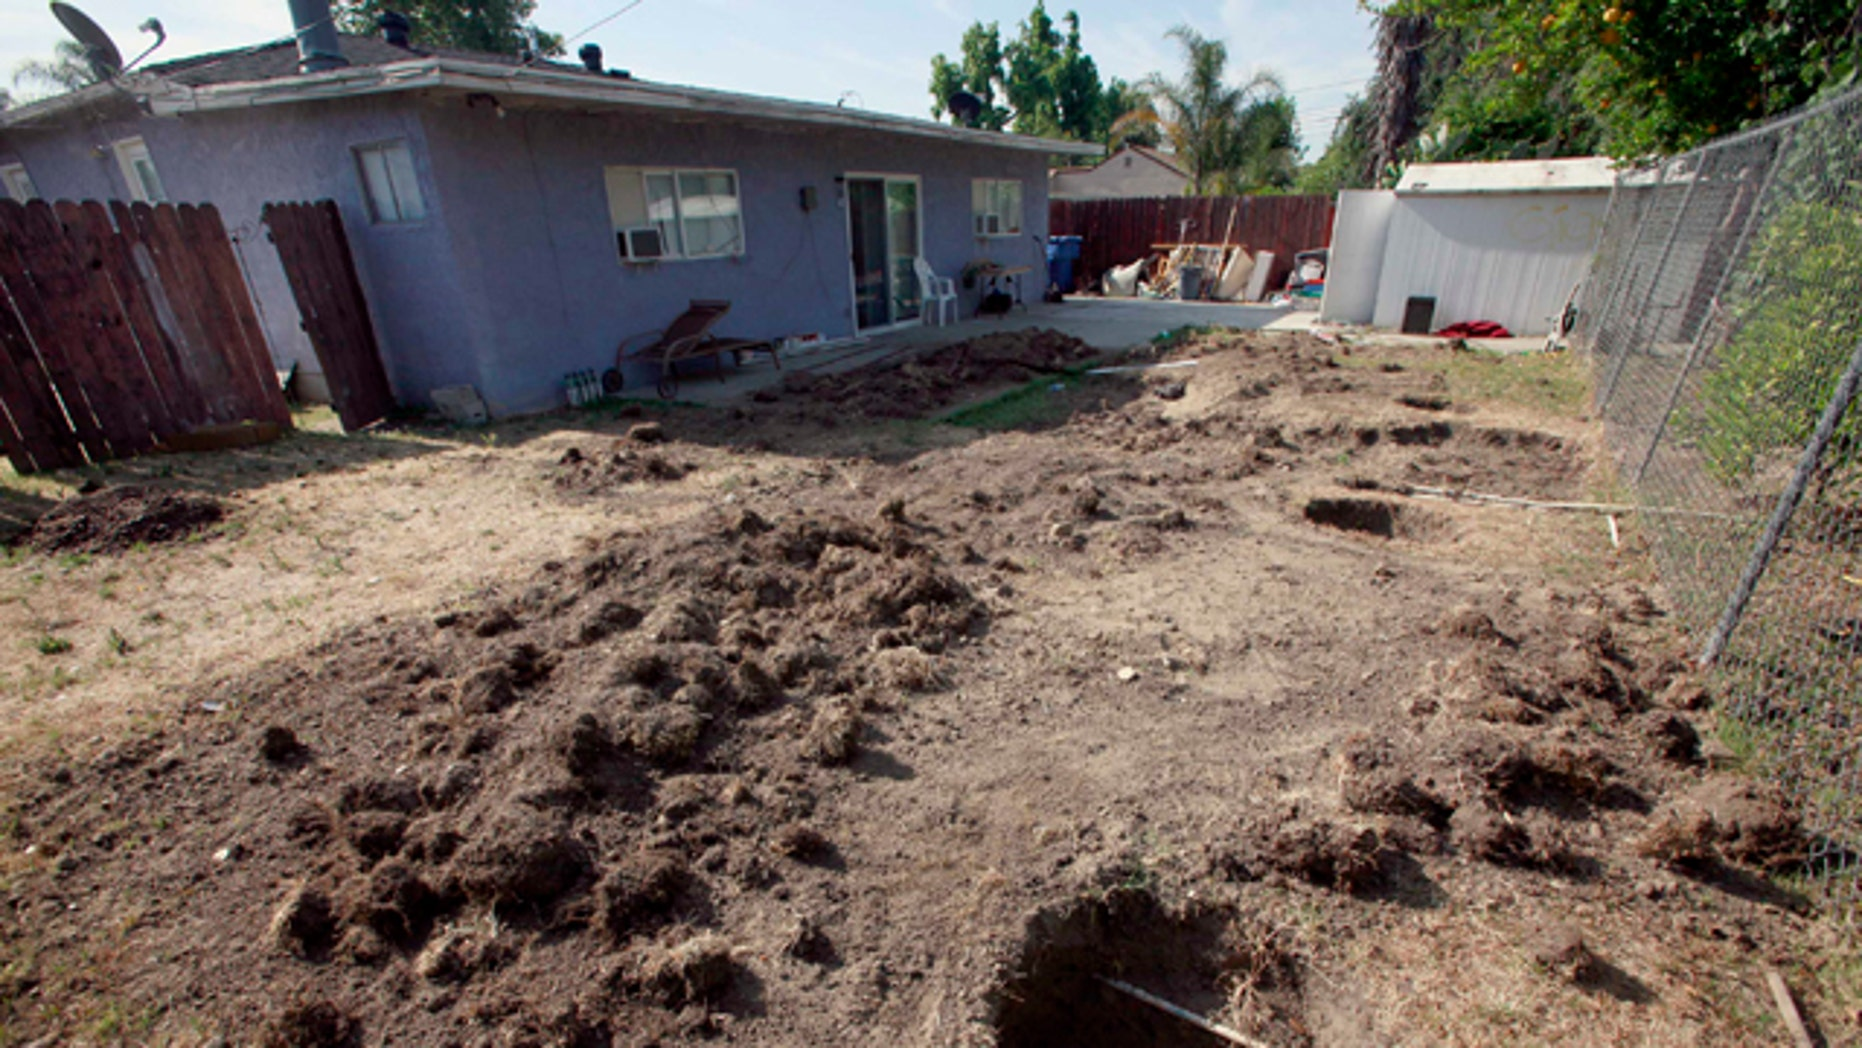 May 31: Photo showing the dug up backyard of a house in Ontario, Calif. Police arrested 51-year-old Carmen Montenegro Sunday night in an Ontario neighborhood where Investigators spent Monday excavating the property outside the home where the body is believed to have come from.